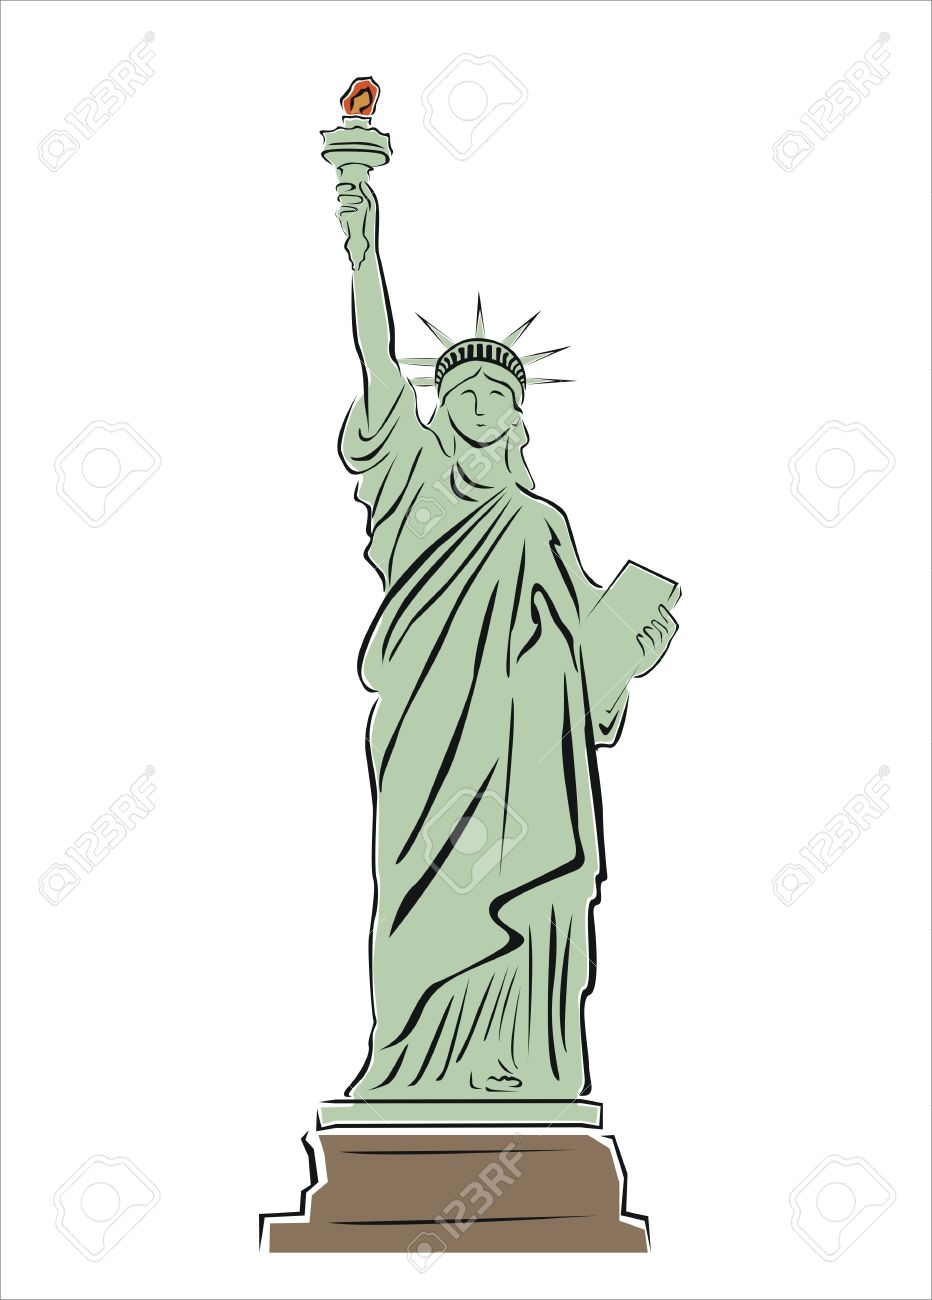 932x1300 Drawing Of The Statue Of Liberty Royalty Free Cliparts, Vectors